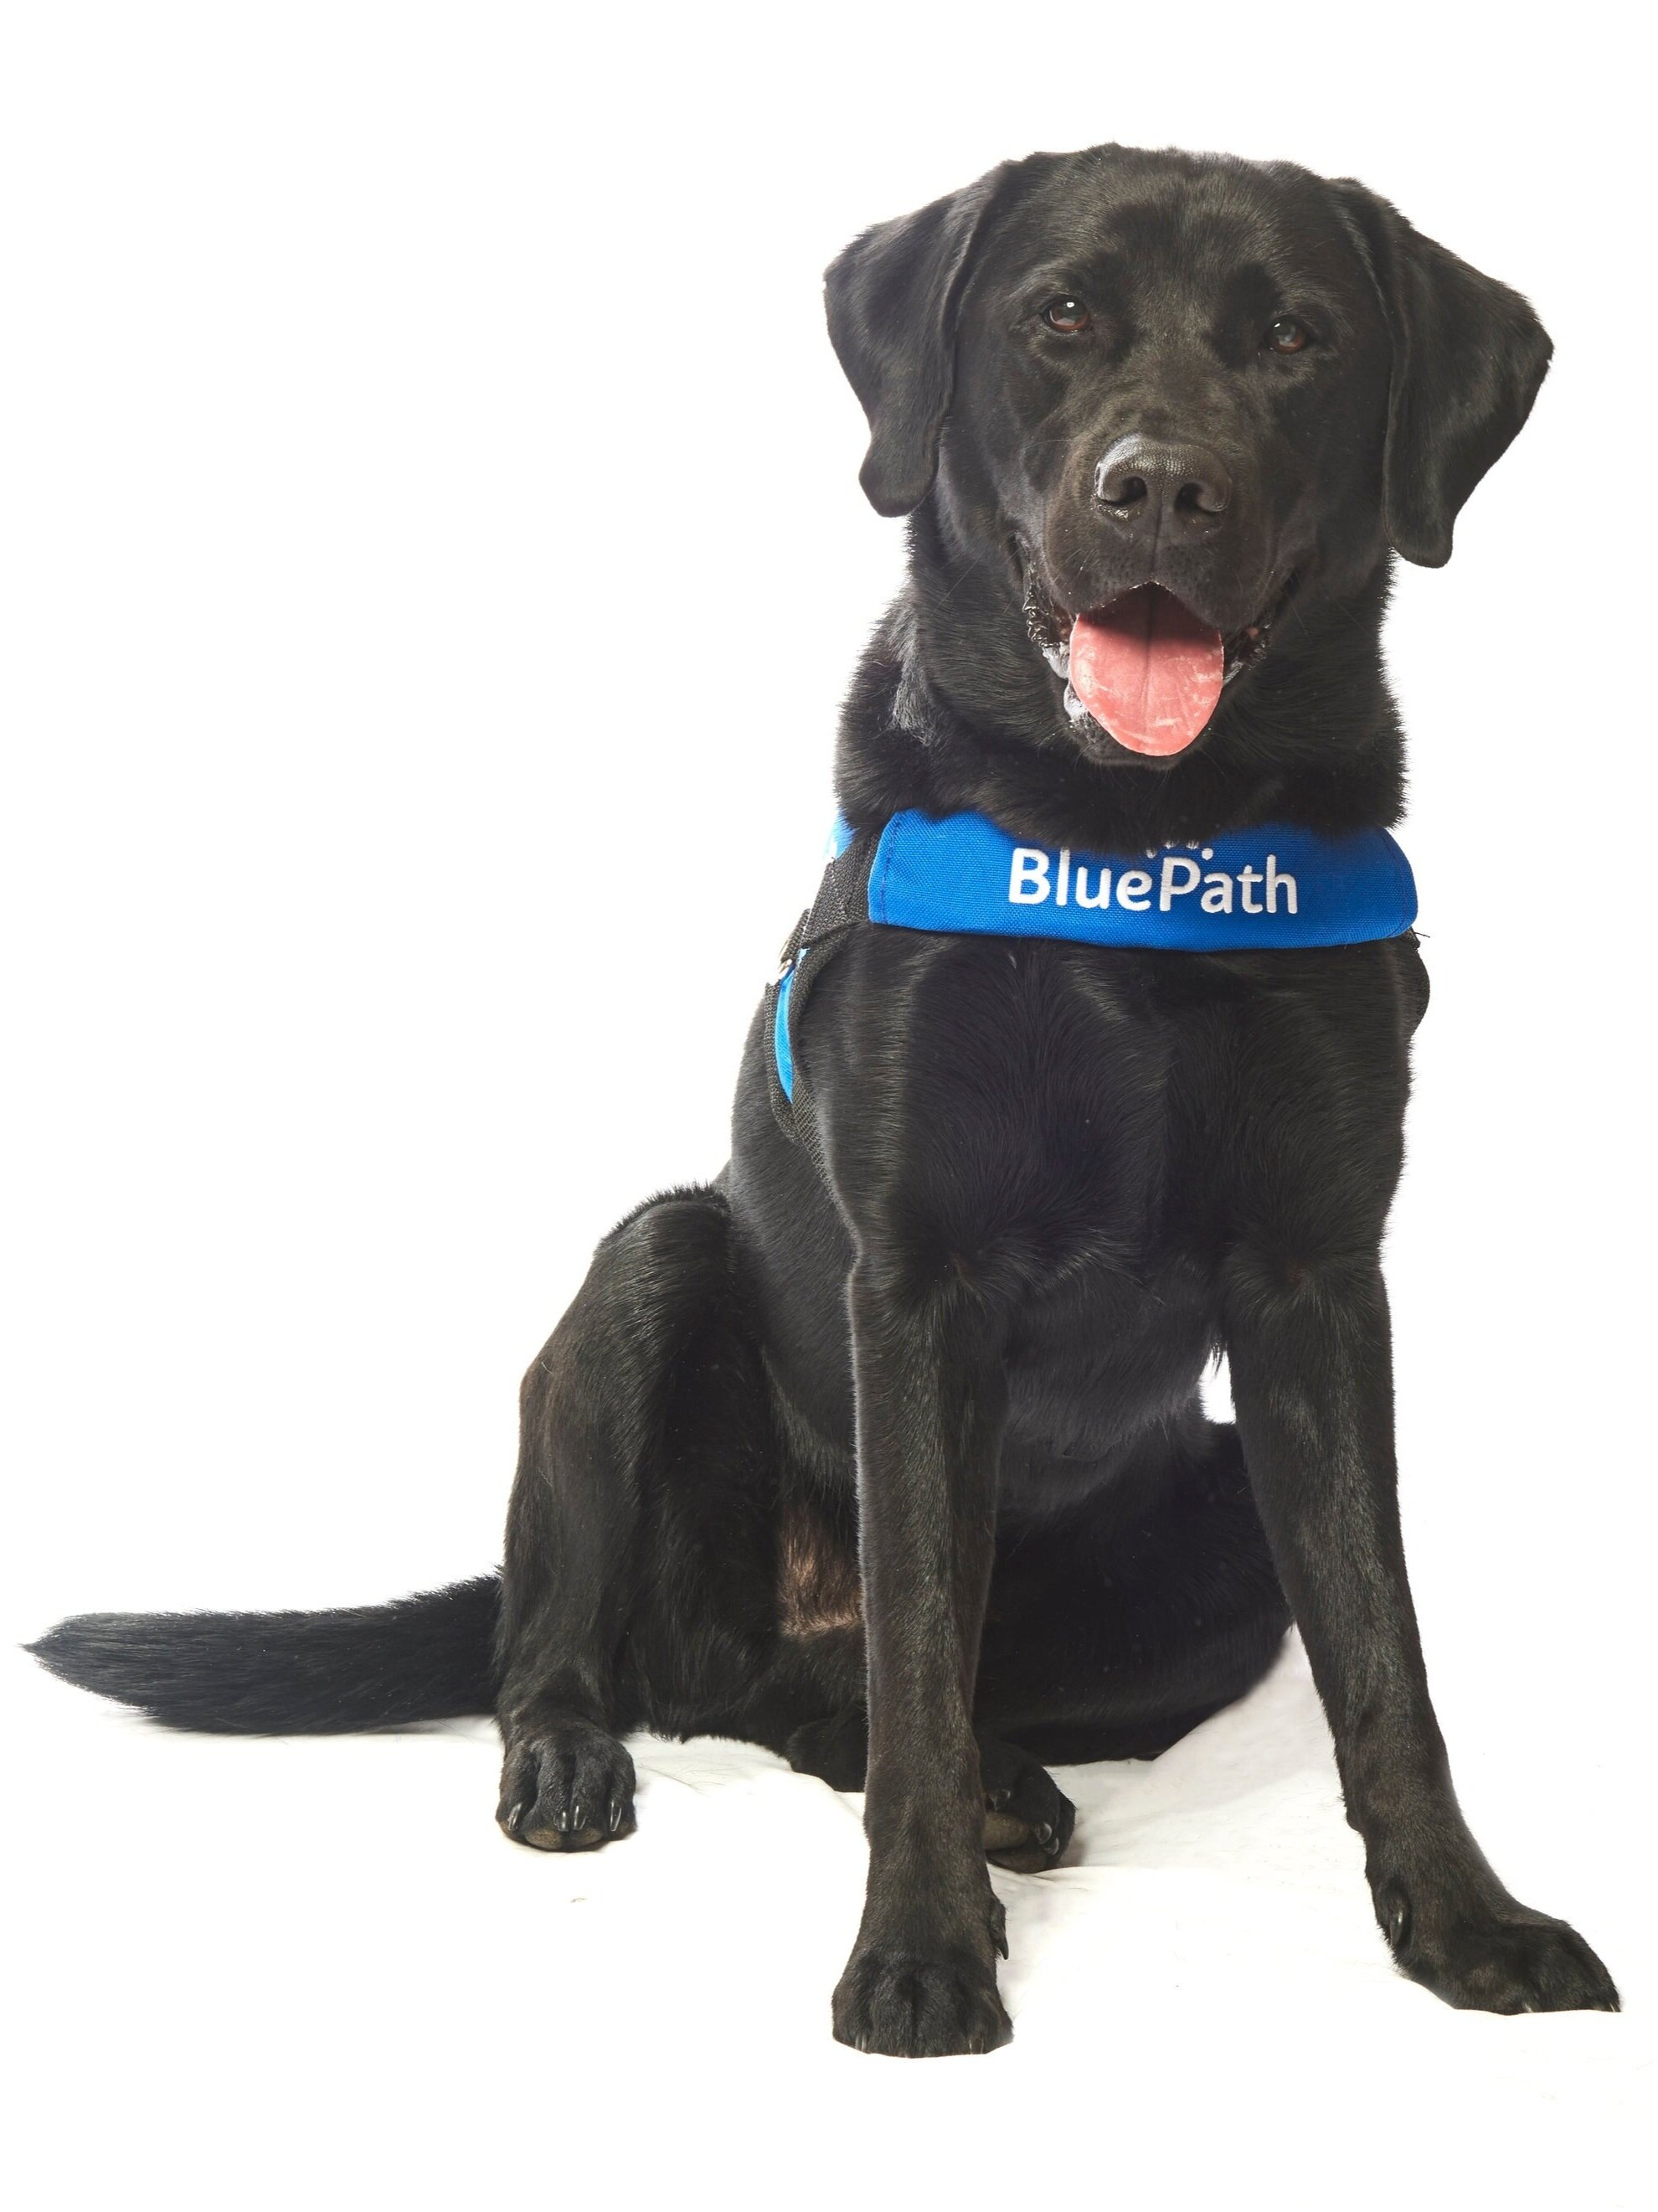 BluePath Chester   Graduated with the Flaherty family  Raised by Judy Wiles  Fostered by the Carlin family  Provided by Southeastern Guide Dogs